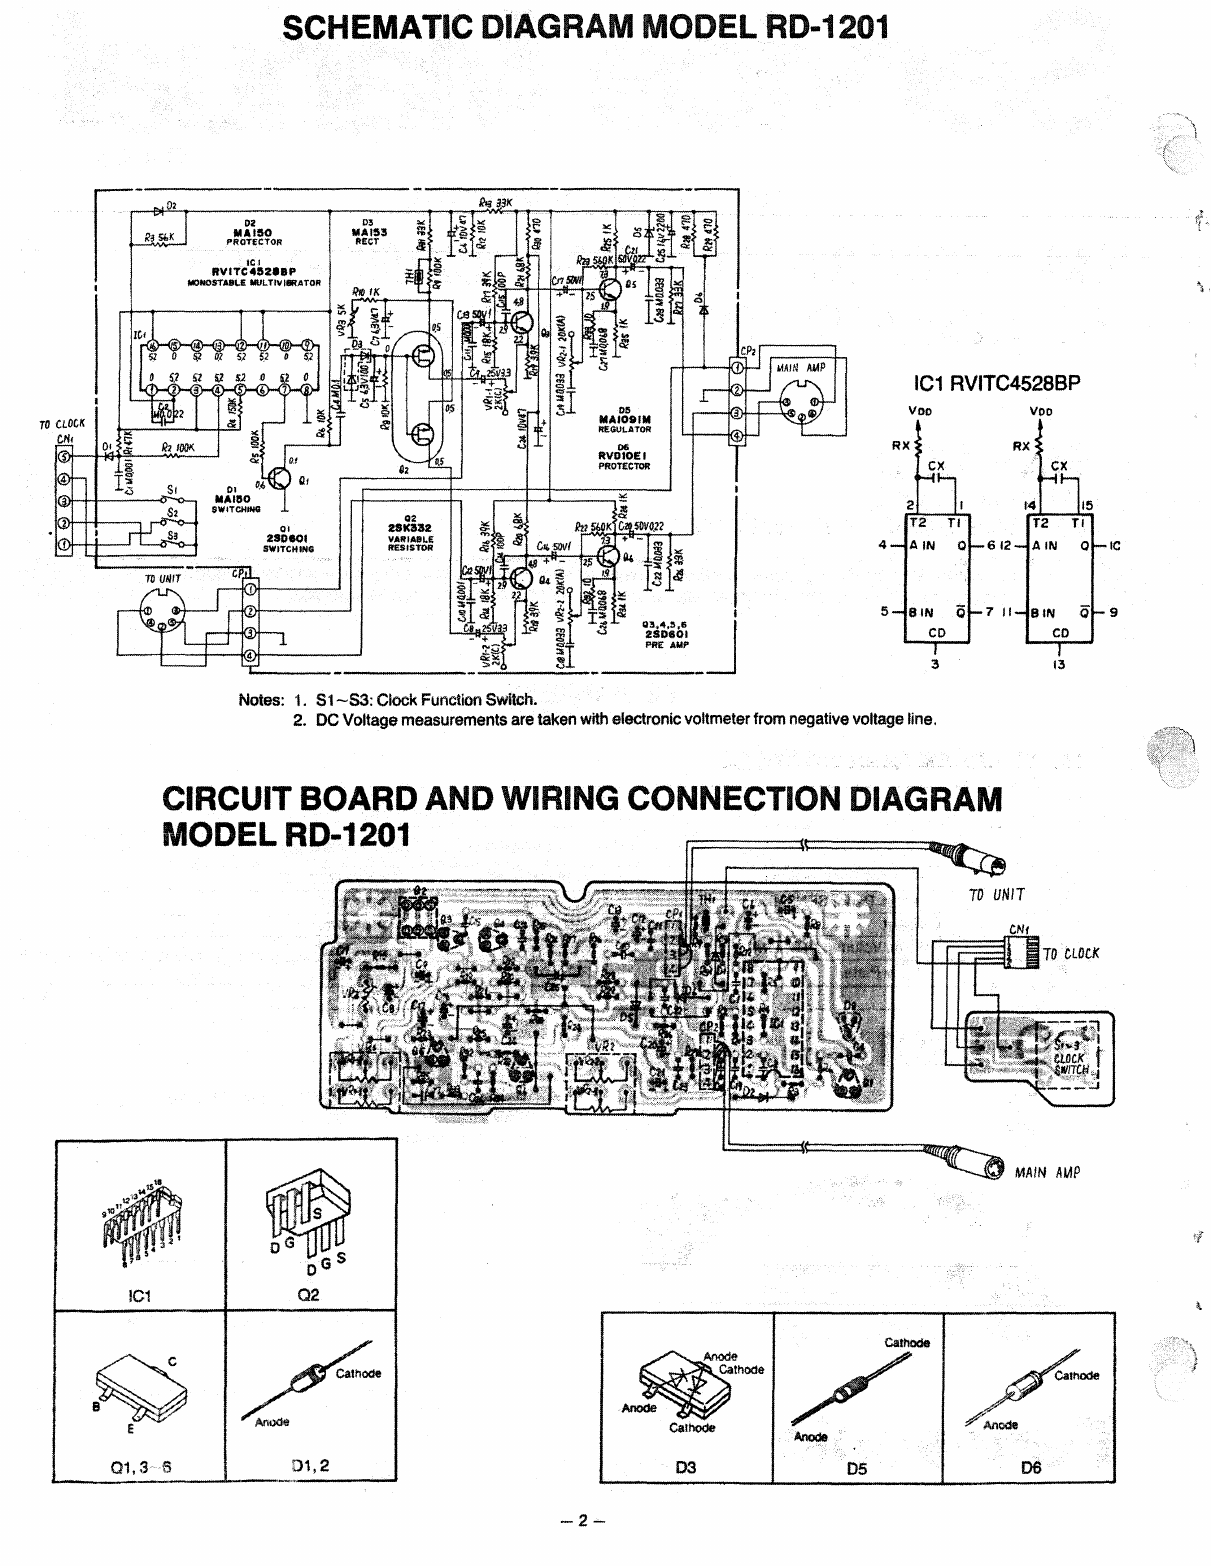 f4b4e64f 2aa6 444f a72b 57e8309c2711 bg2?resize\\\=665%2C860 yamaha phazer 2 wiring diagram wiring diagrams  at gsmx.co